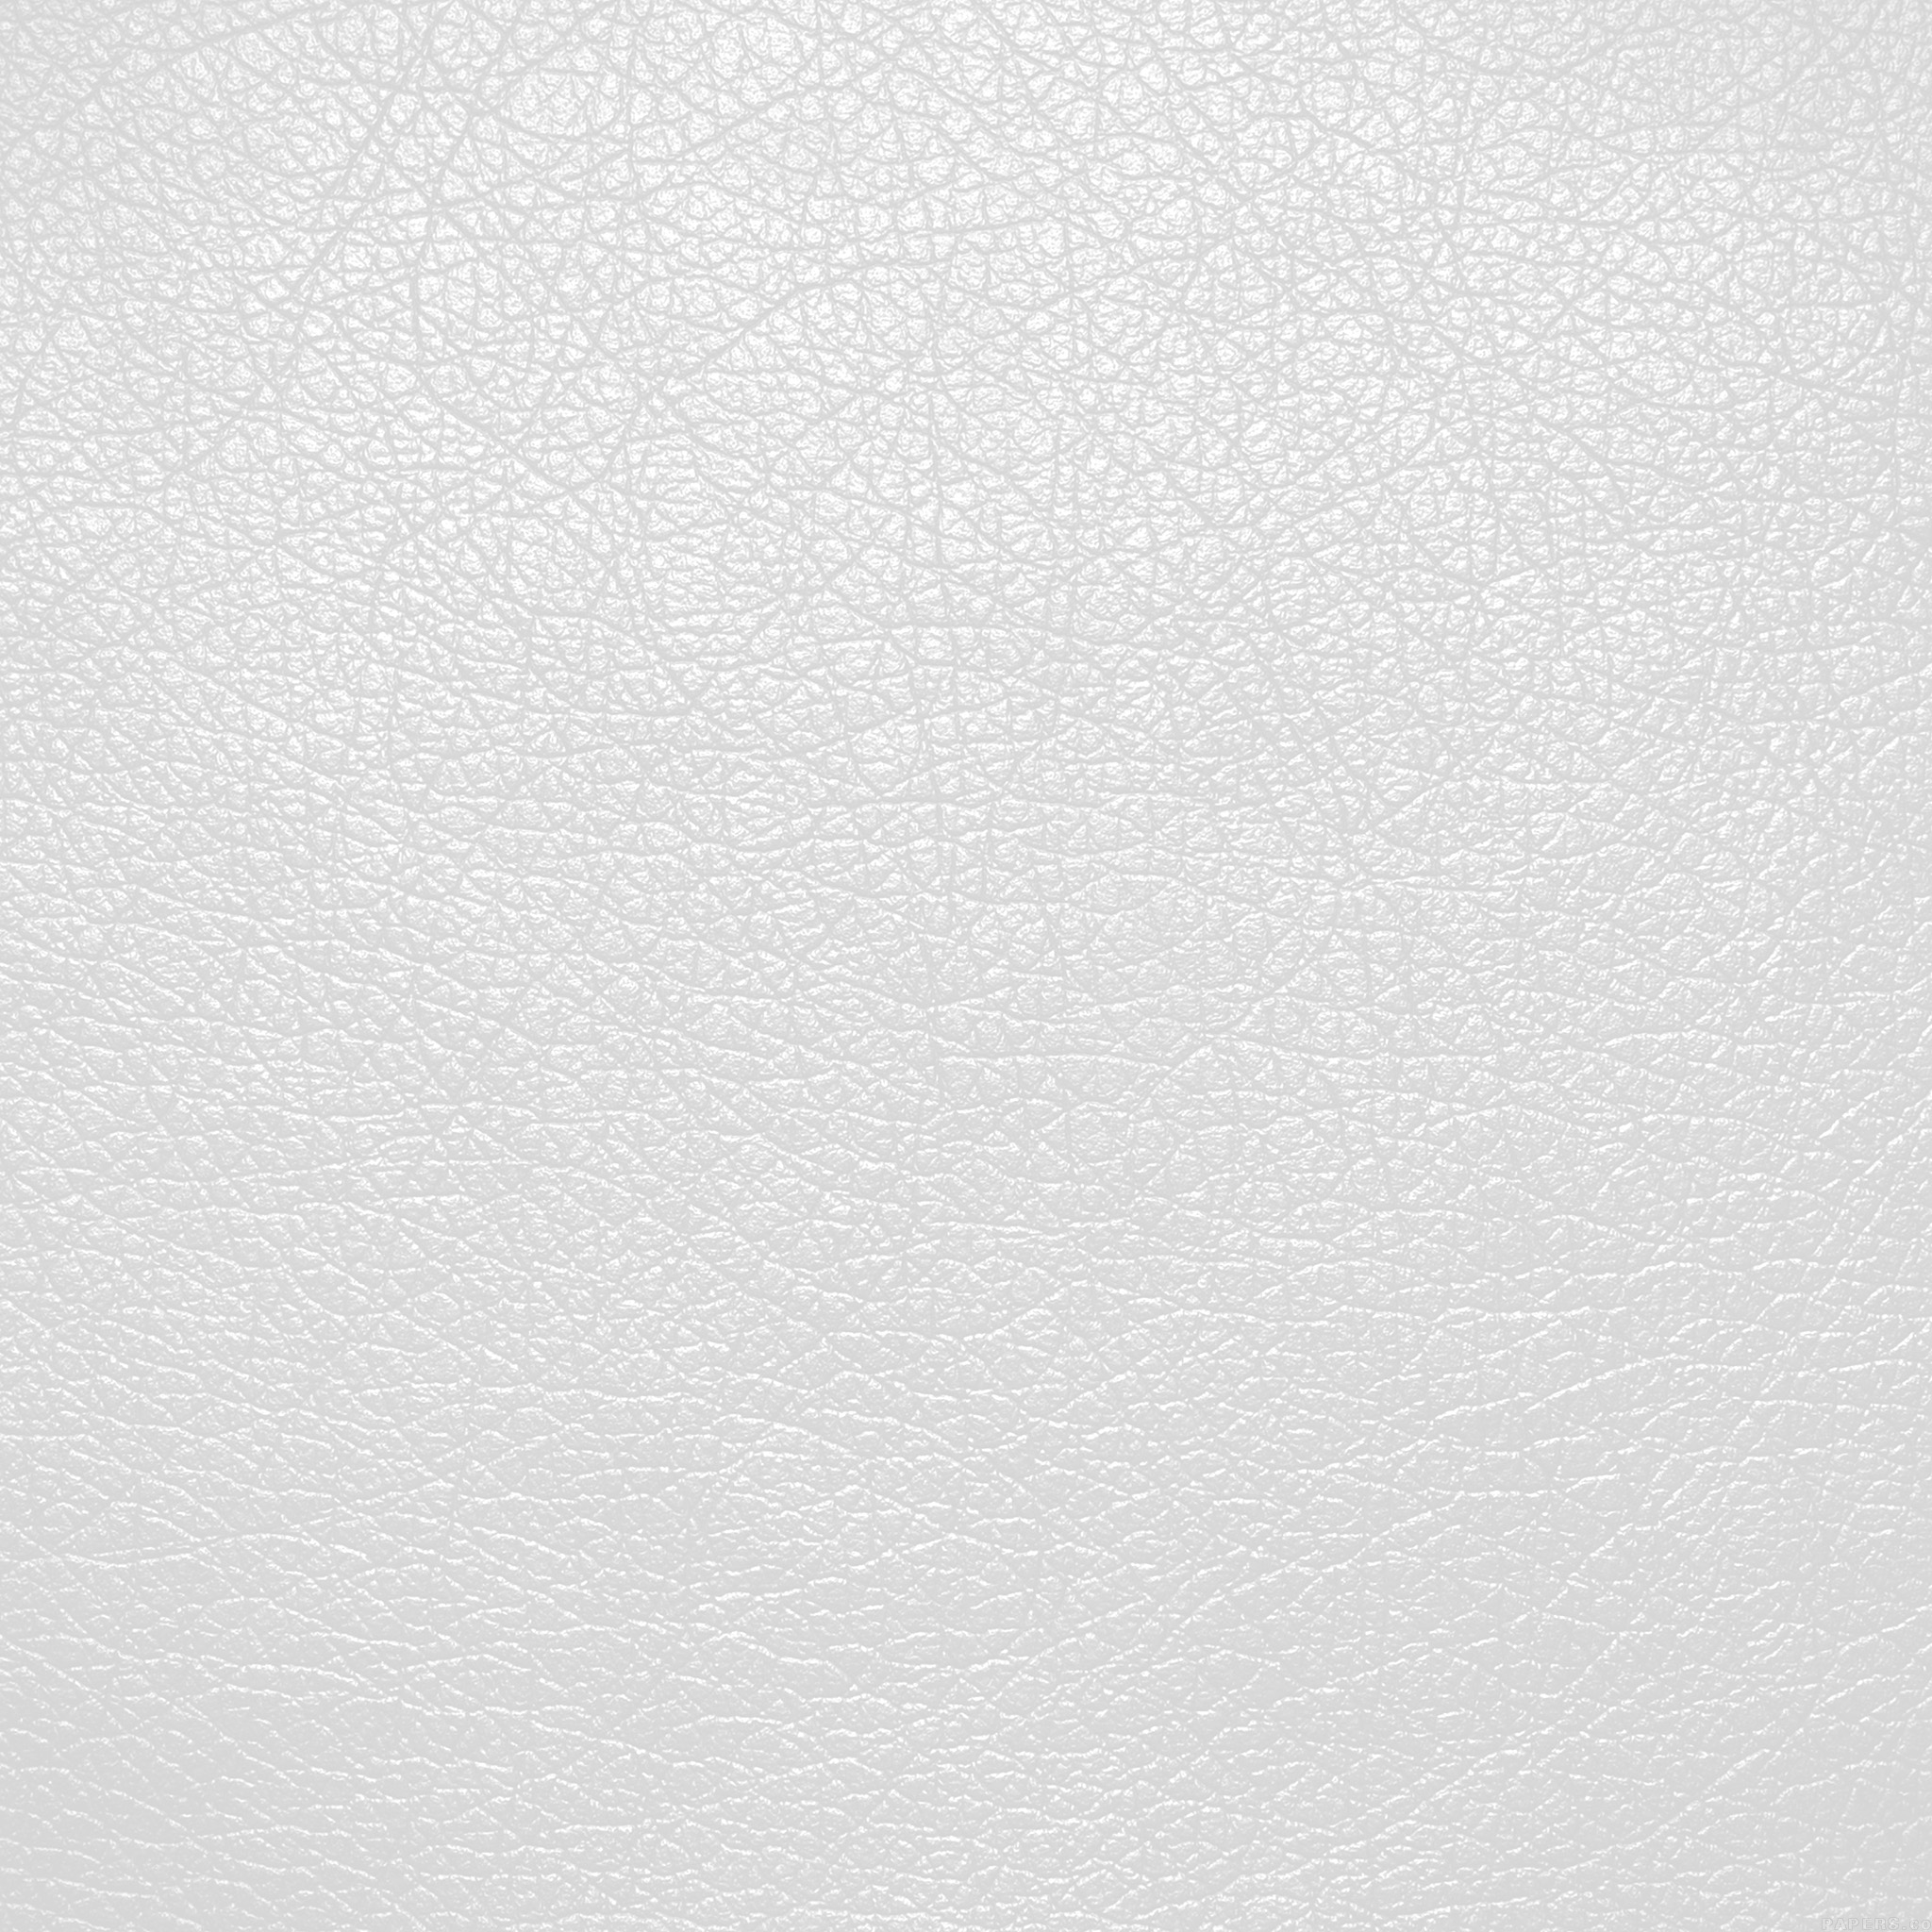 Androidpapers android wallpaper vi31 texture skin white medium voltagebd Images